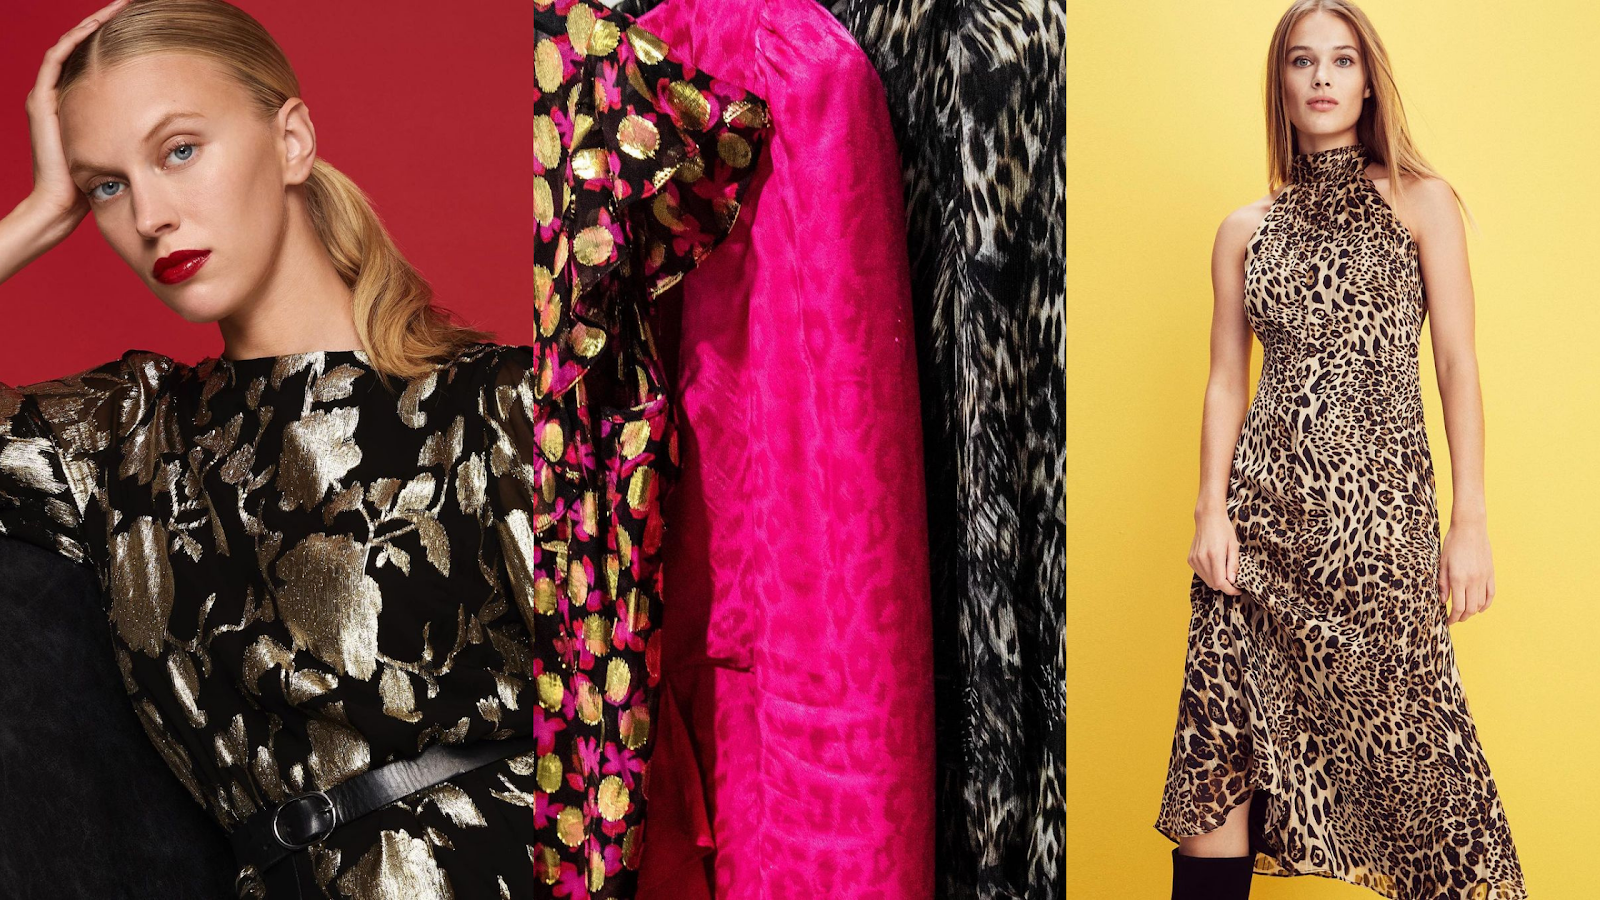 Shop work holiday party outfits from Milly